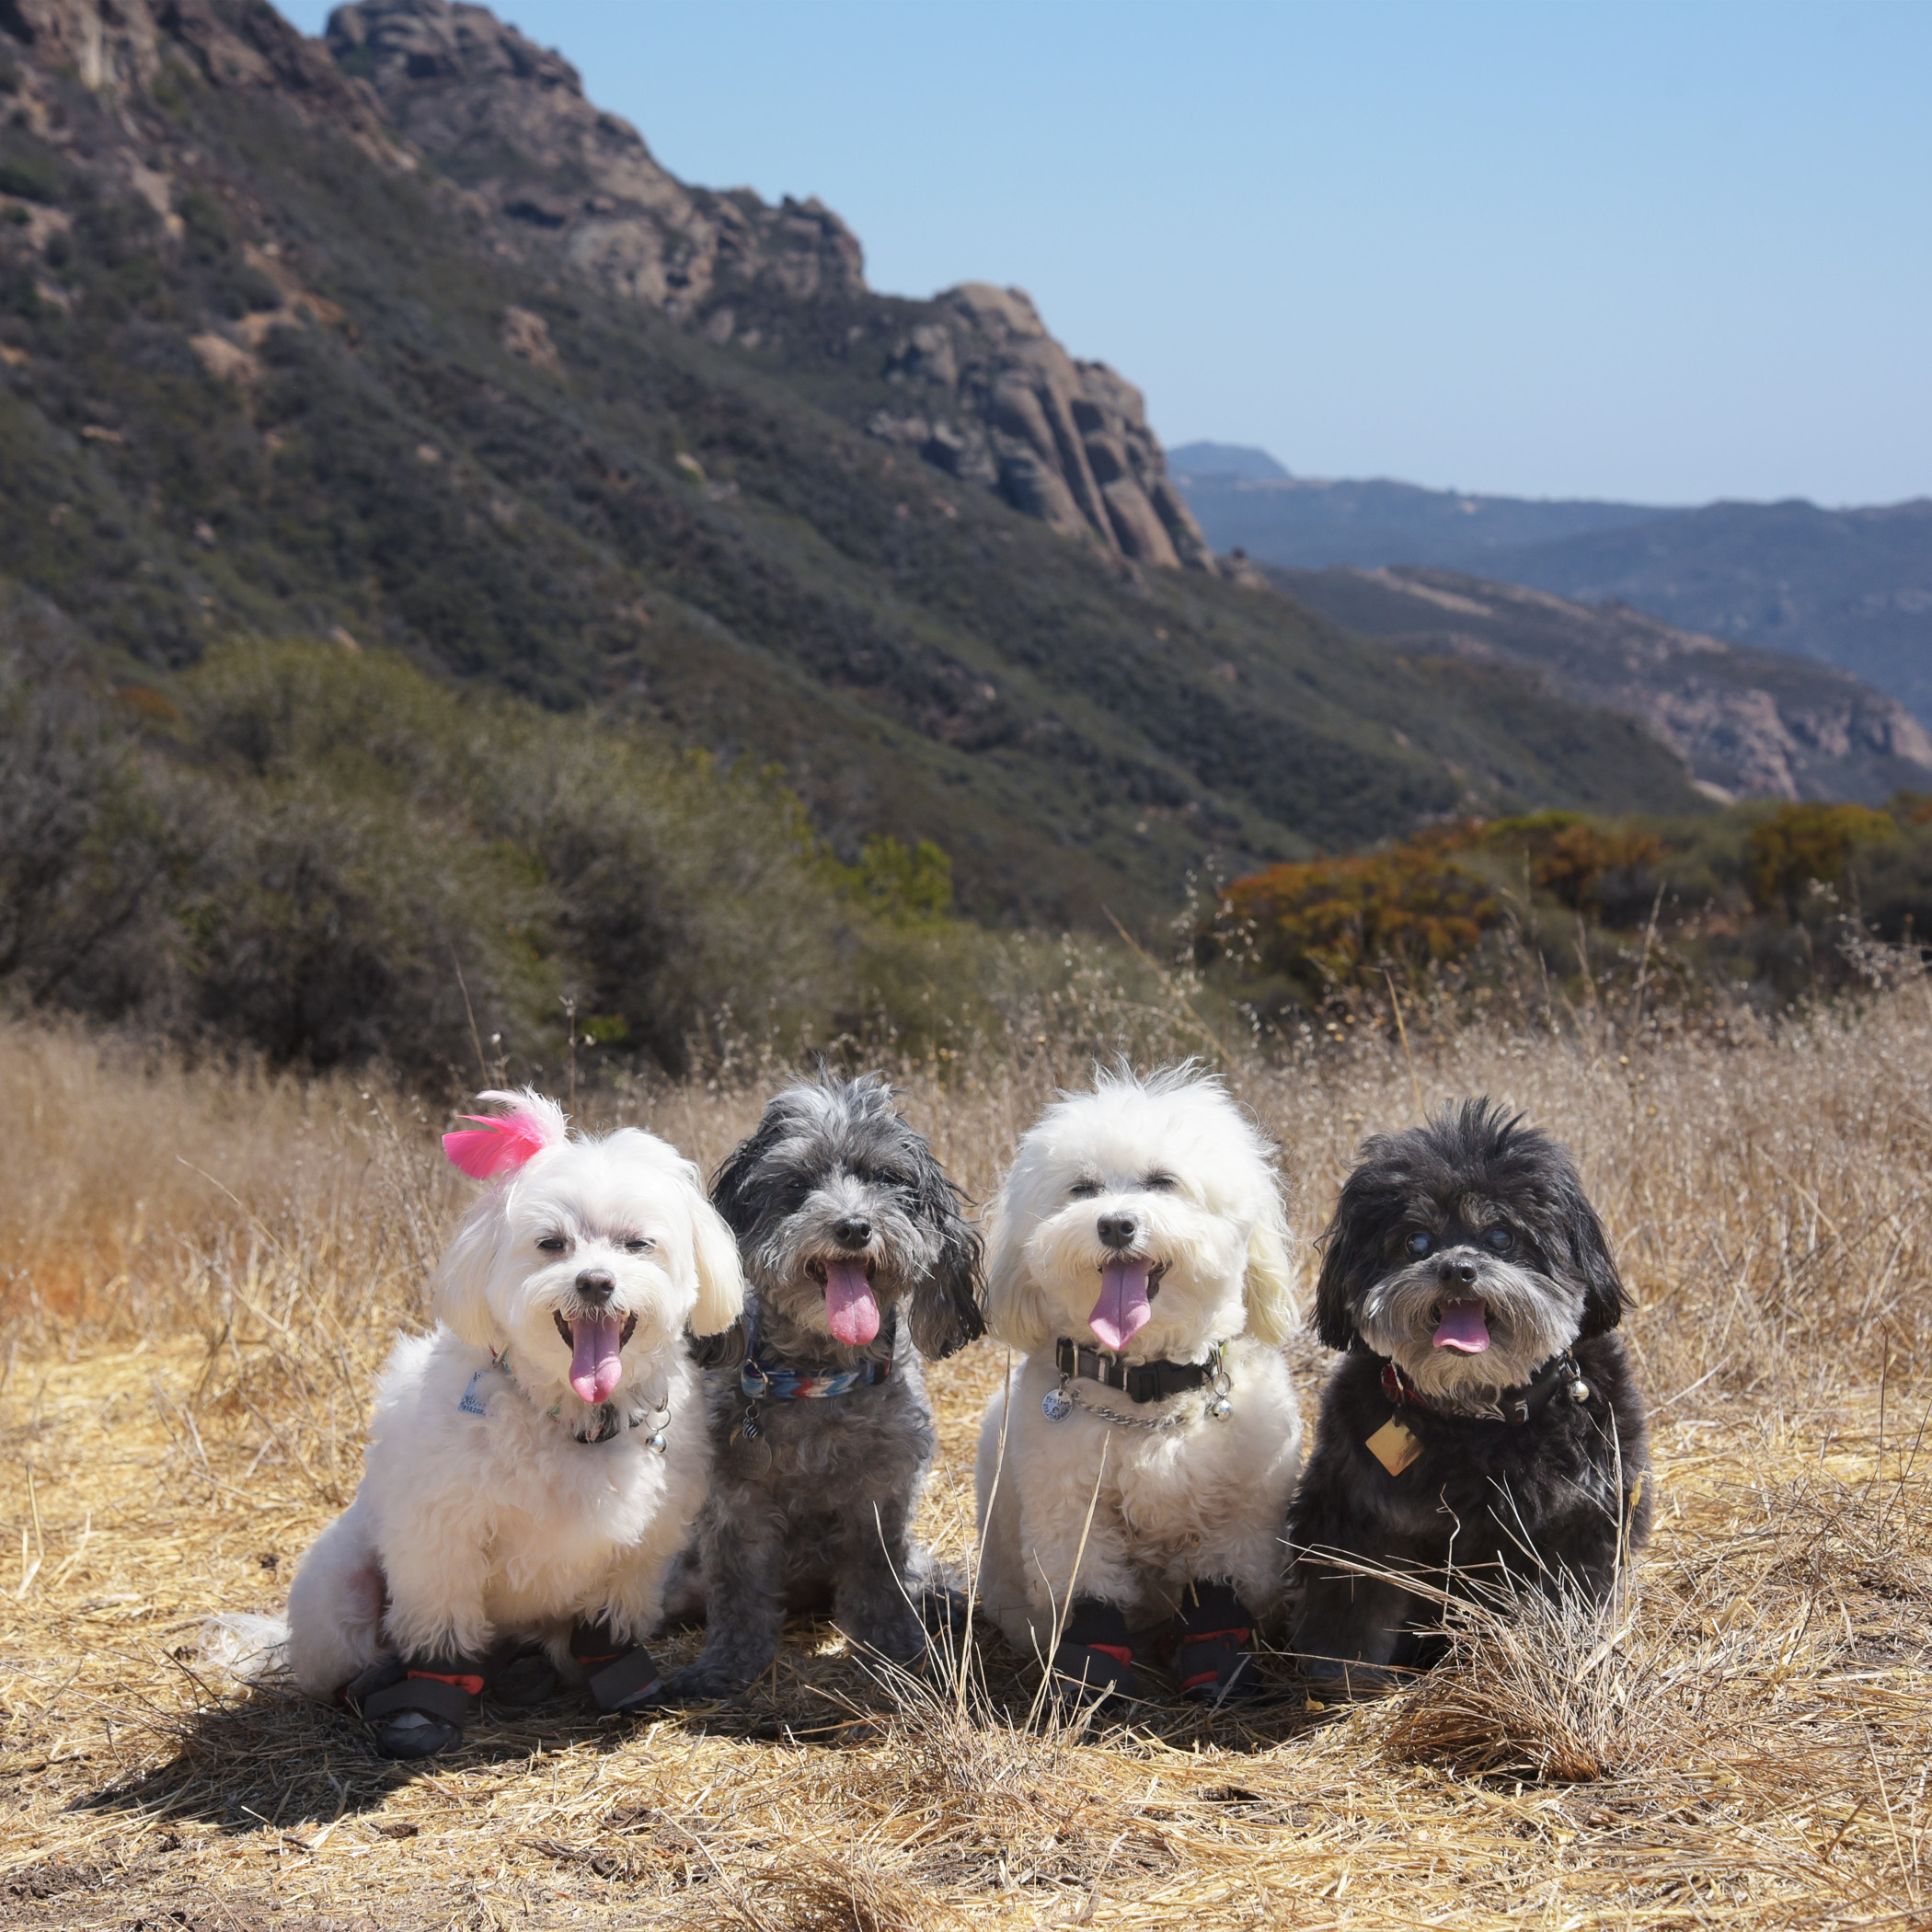 We tried to go for a hike in the Santa Monica Mountains, but it turned out to be way too hot. We went a short distance and both Mommy & Daddy said nope, this is too much for you guys. (Personally, we just think they're weanies and weren't up for the hike!) But, we couldn't leave without getting one memorable photo. You can tell how hot it was, just by the length of our tongues…and the fact that you can actually see Benji's tongue! It's a rare sighting!